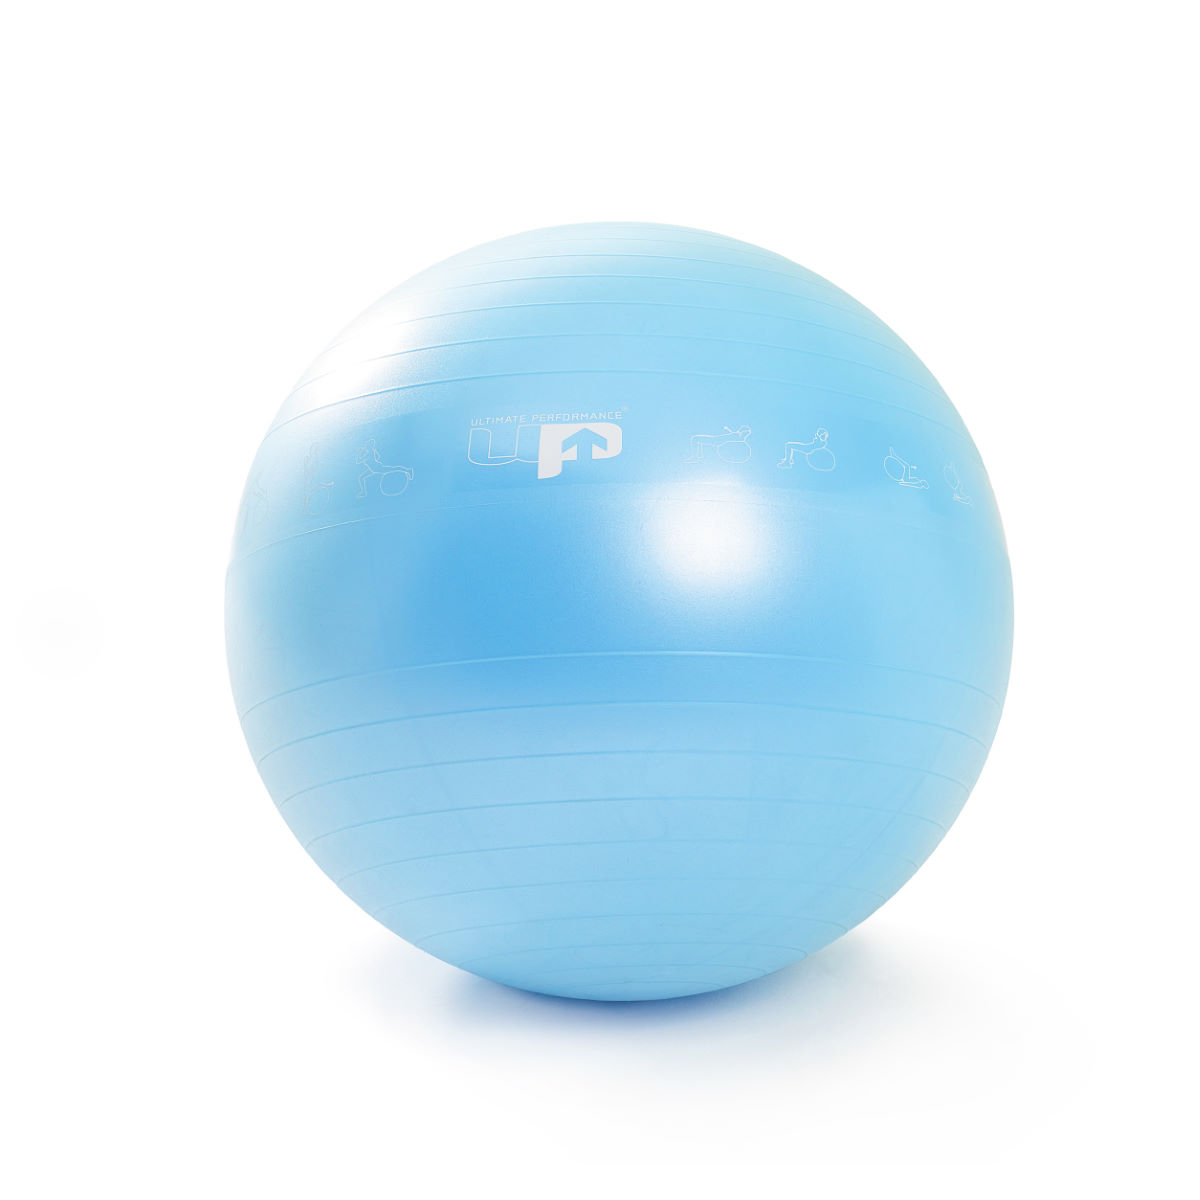 Image of Balle de gym Ultimate Performance (55 cm) - 55cm Bleu | Balles de gym